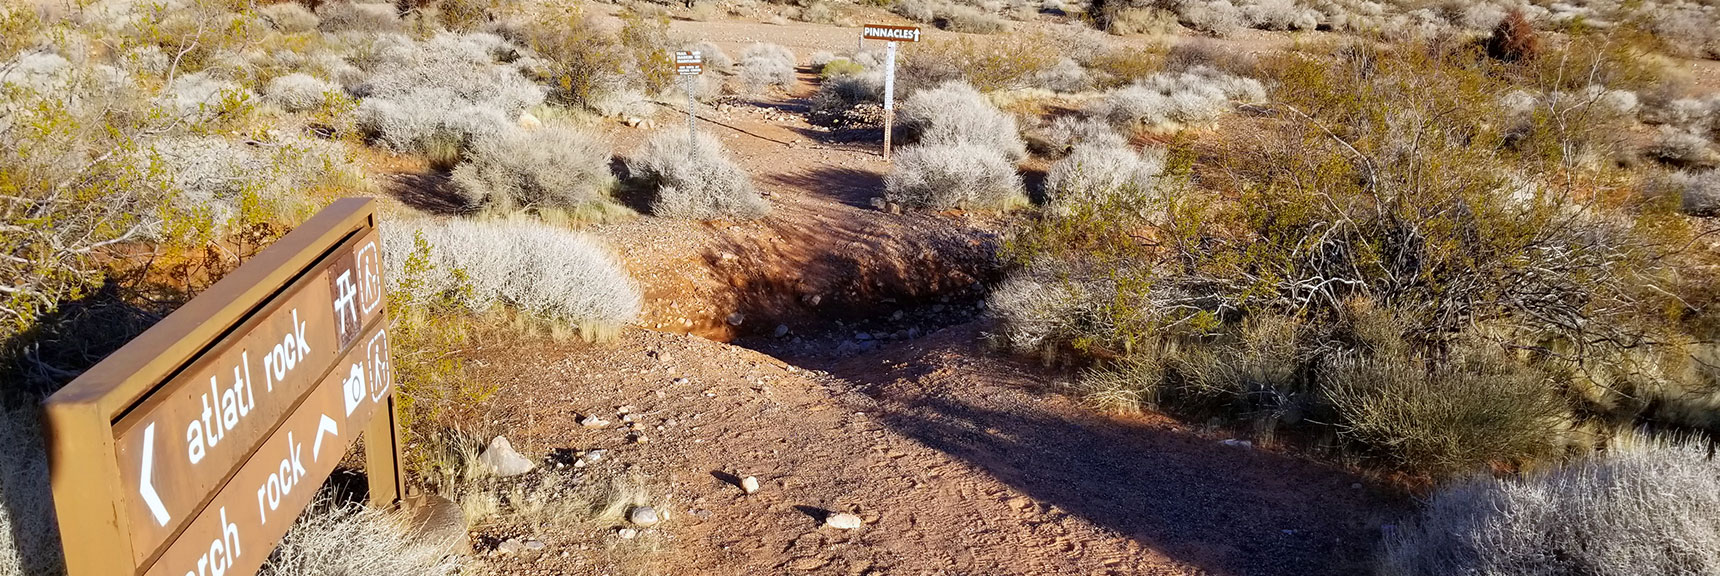 Trailhead for Pinnacles Loop Trail in Valley of Fire State Park, Nevada